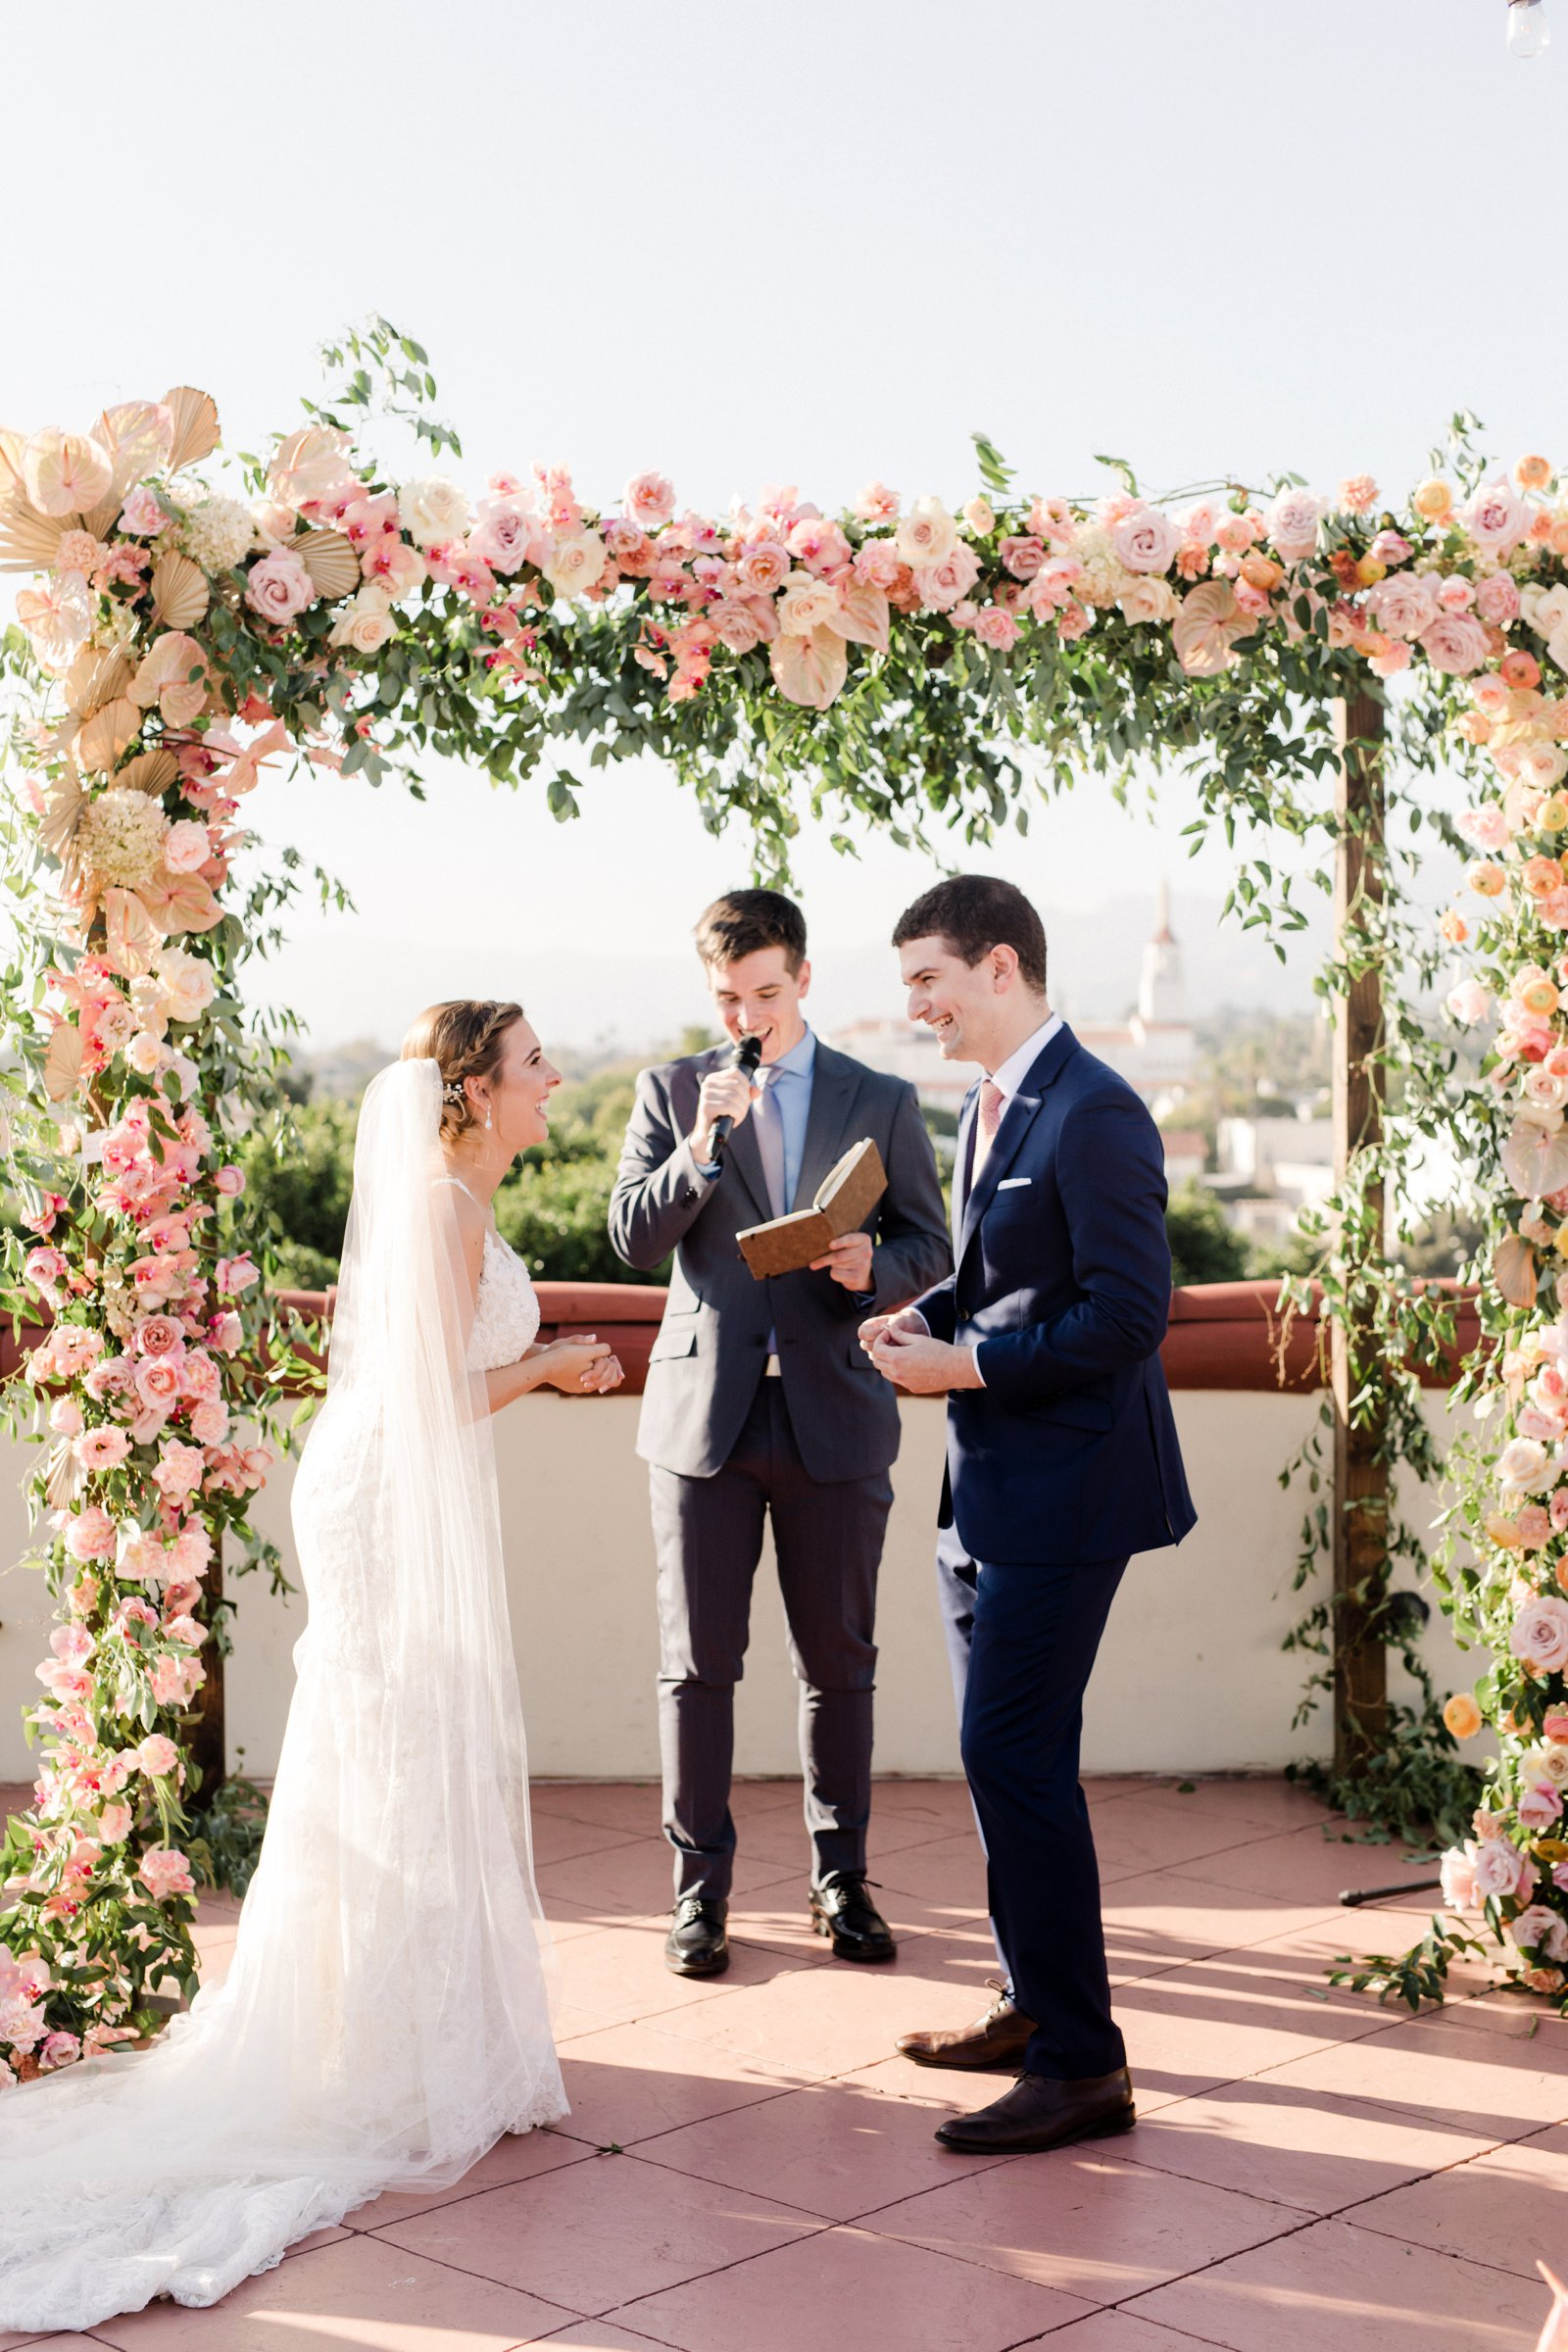 www.santabarbarawedding.com | Anna Delores Photography | Kimpton Canary Hotel | Onyx + Redwood | Idlewild Floral | Bride and Groom During Ceremony